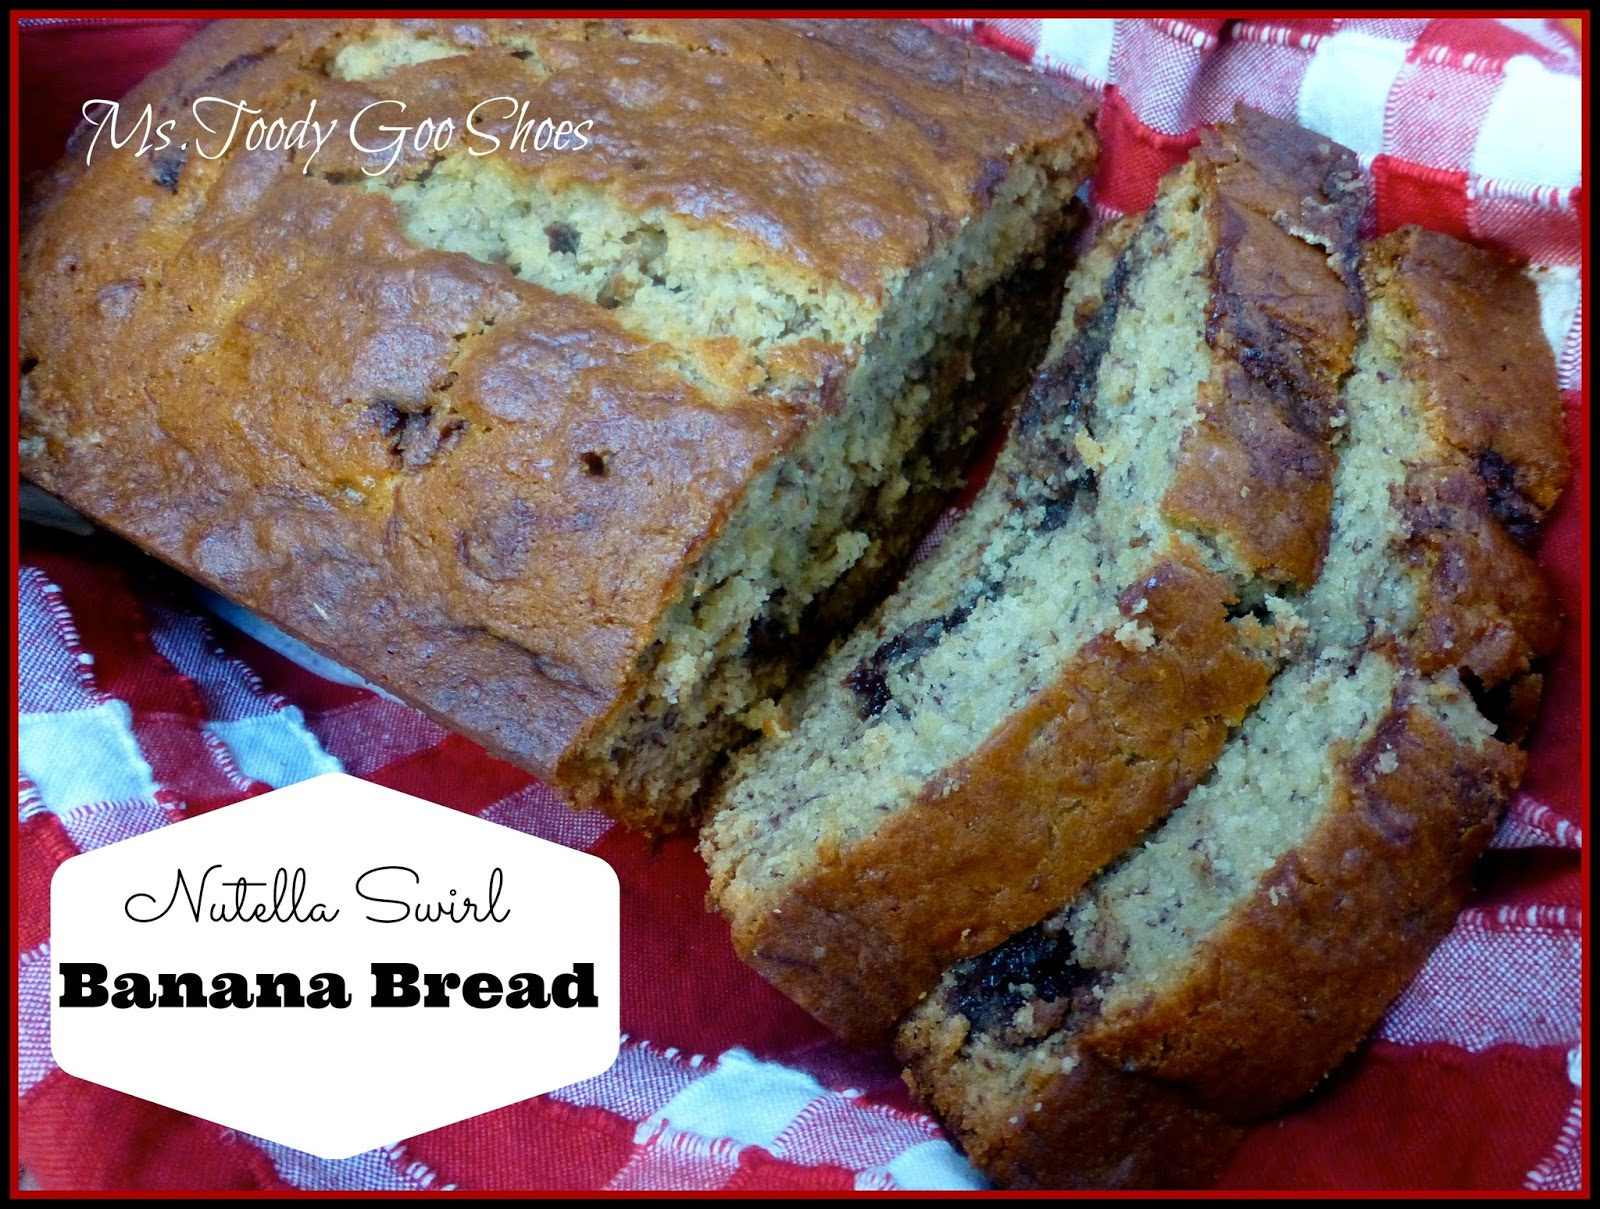 Banana-tella Bread --- Ms. Toody Goo Shoes